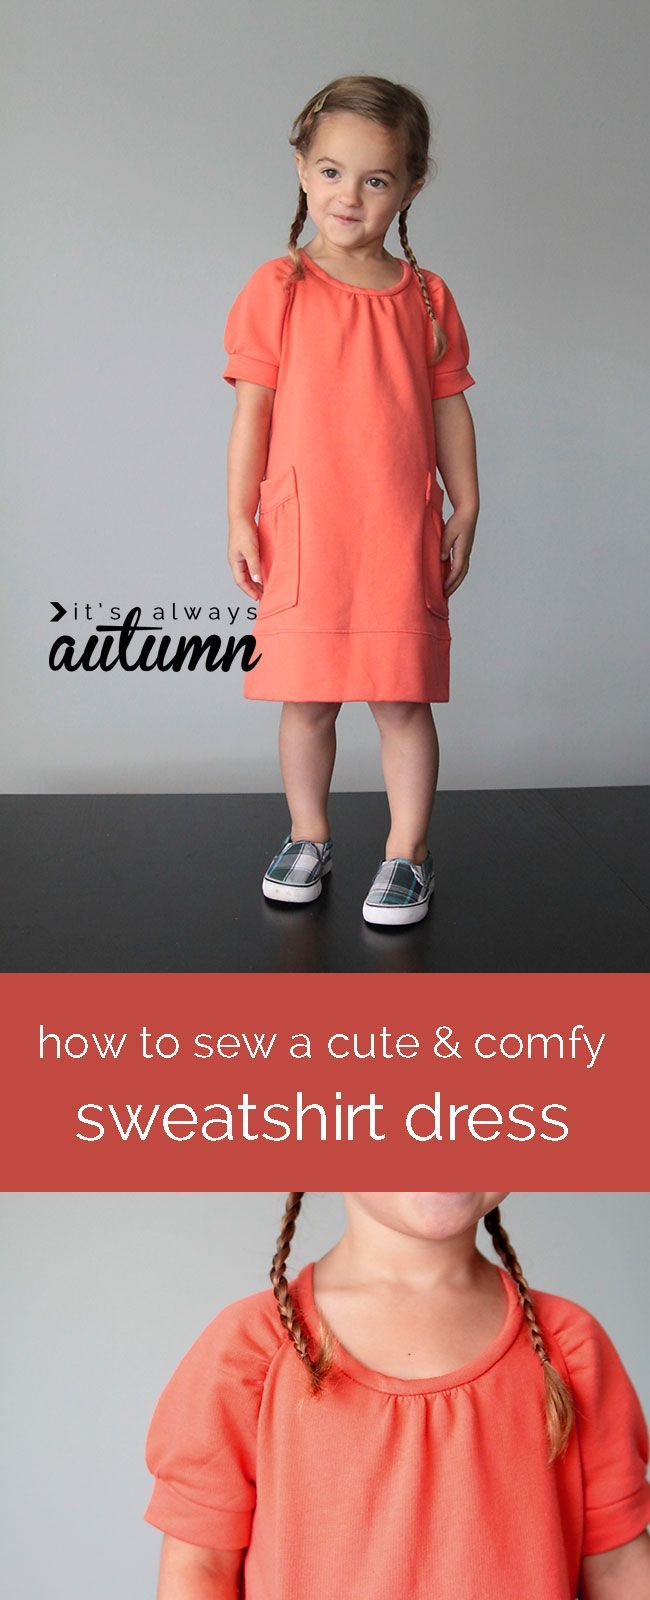 modify a raglan top pattern to sew this adorable girls sweatshirt dress